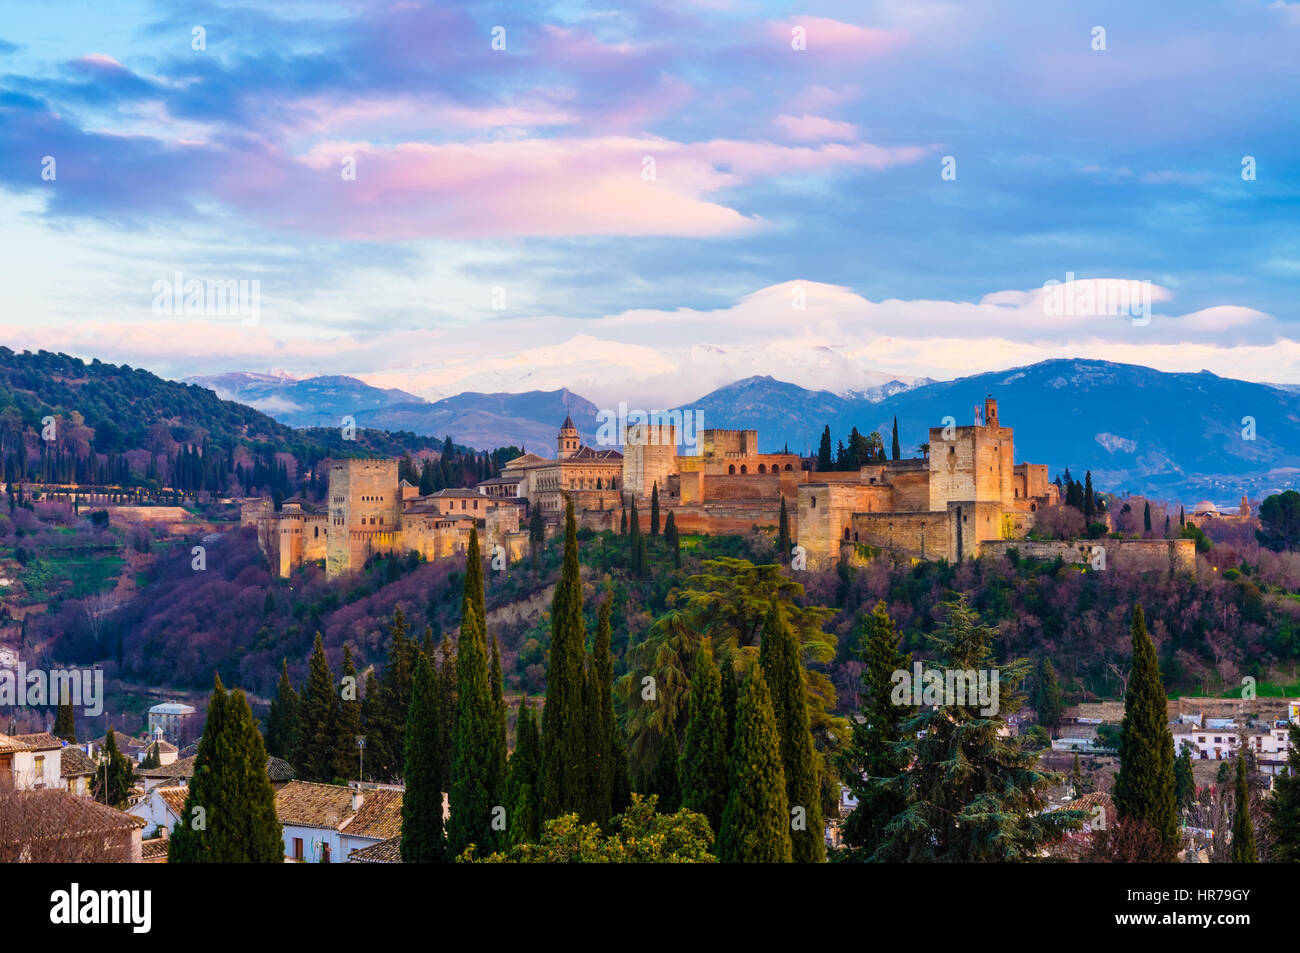 Alhambra palace at sunset with snow-capped Sierra Nevada mountains in background. Granada, Andalusia, Spain - Stock Image